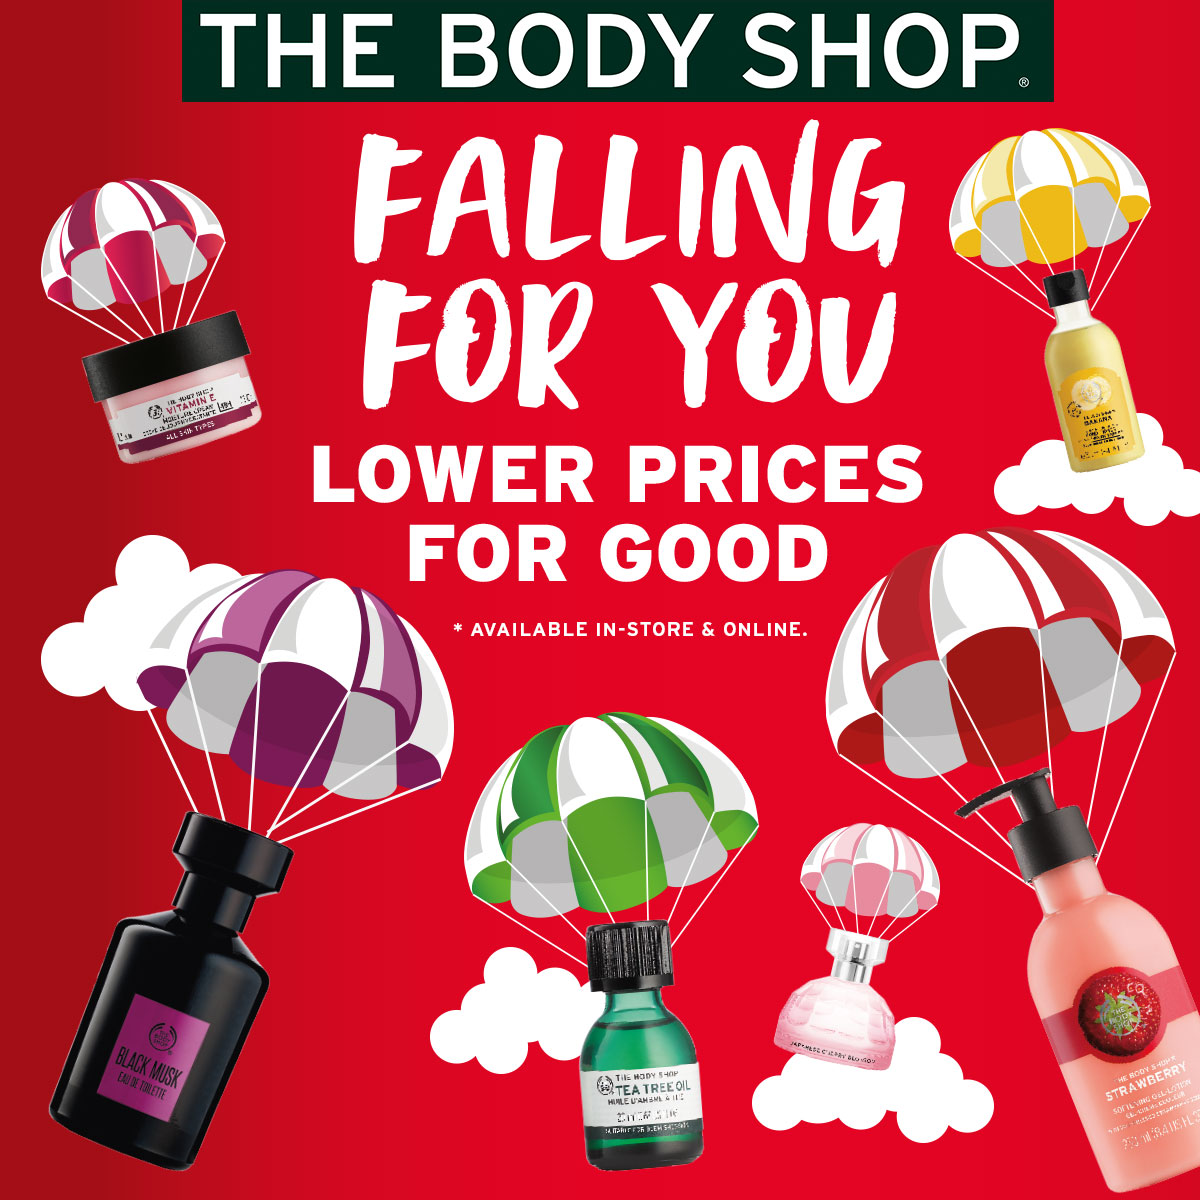 The Body Shop Falling For You Promotions